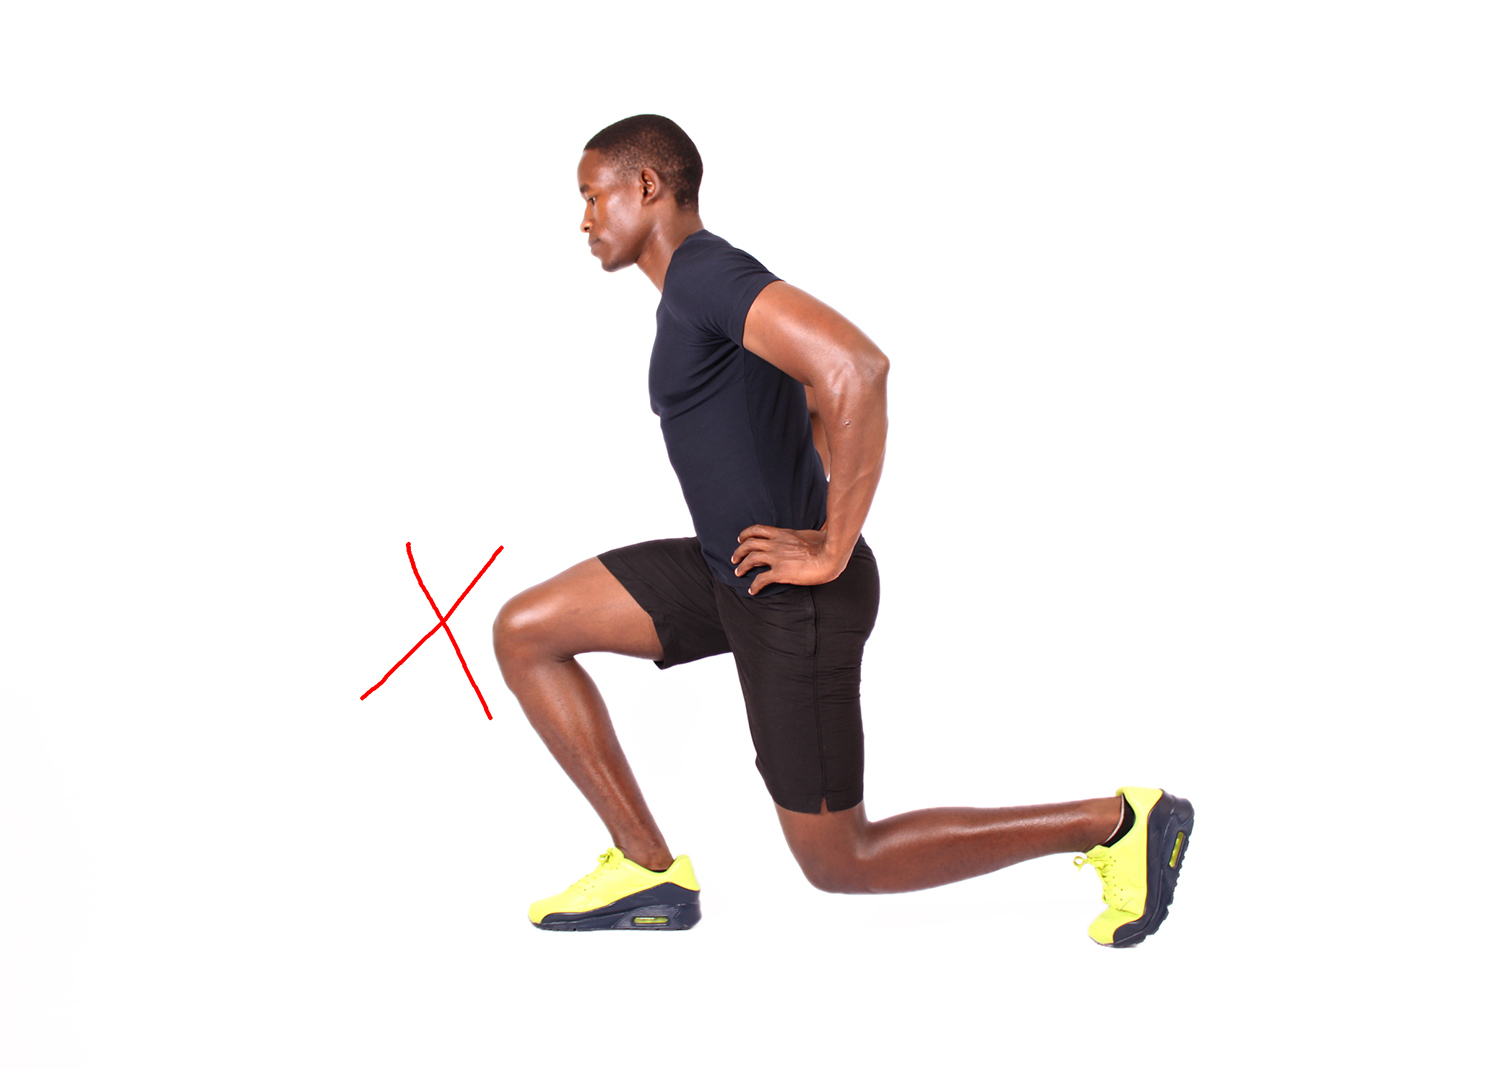 Man-not-performing-lunges-properly.jpg